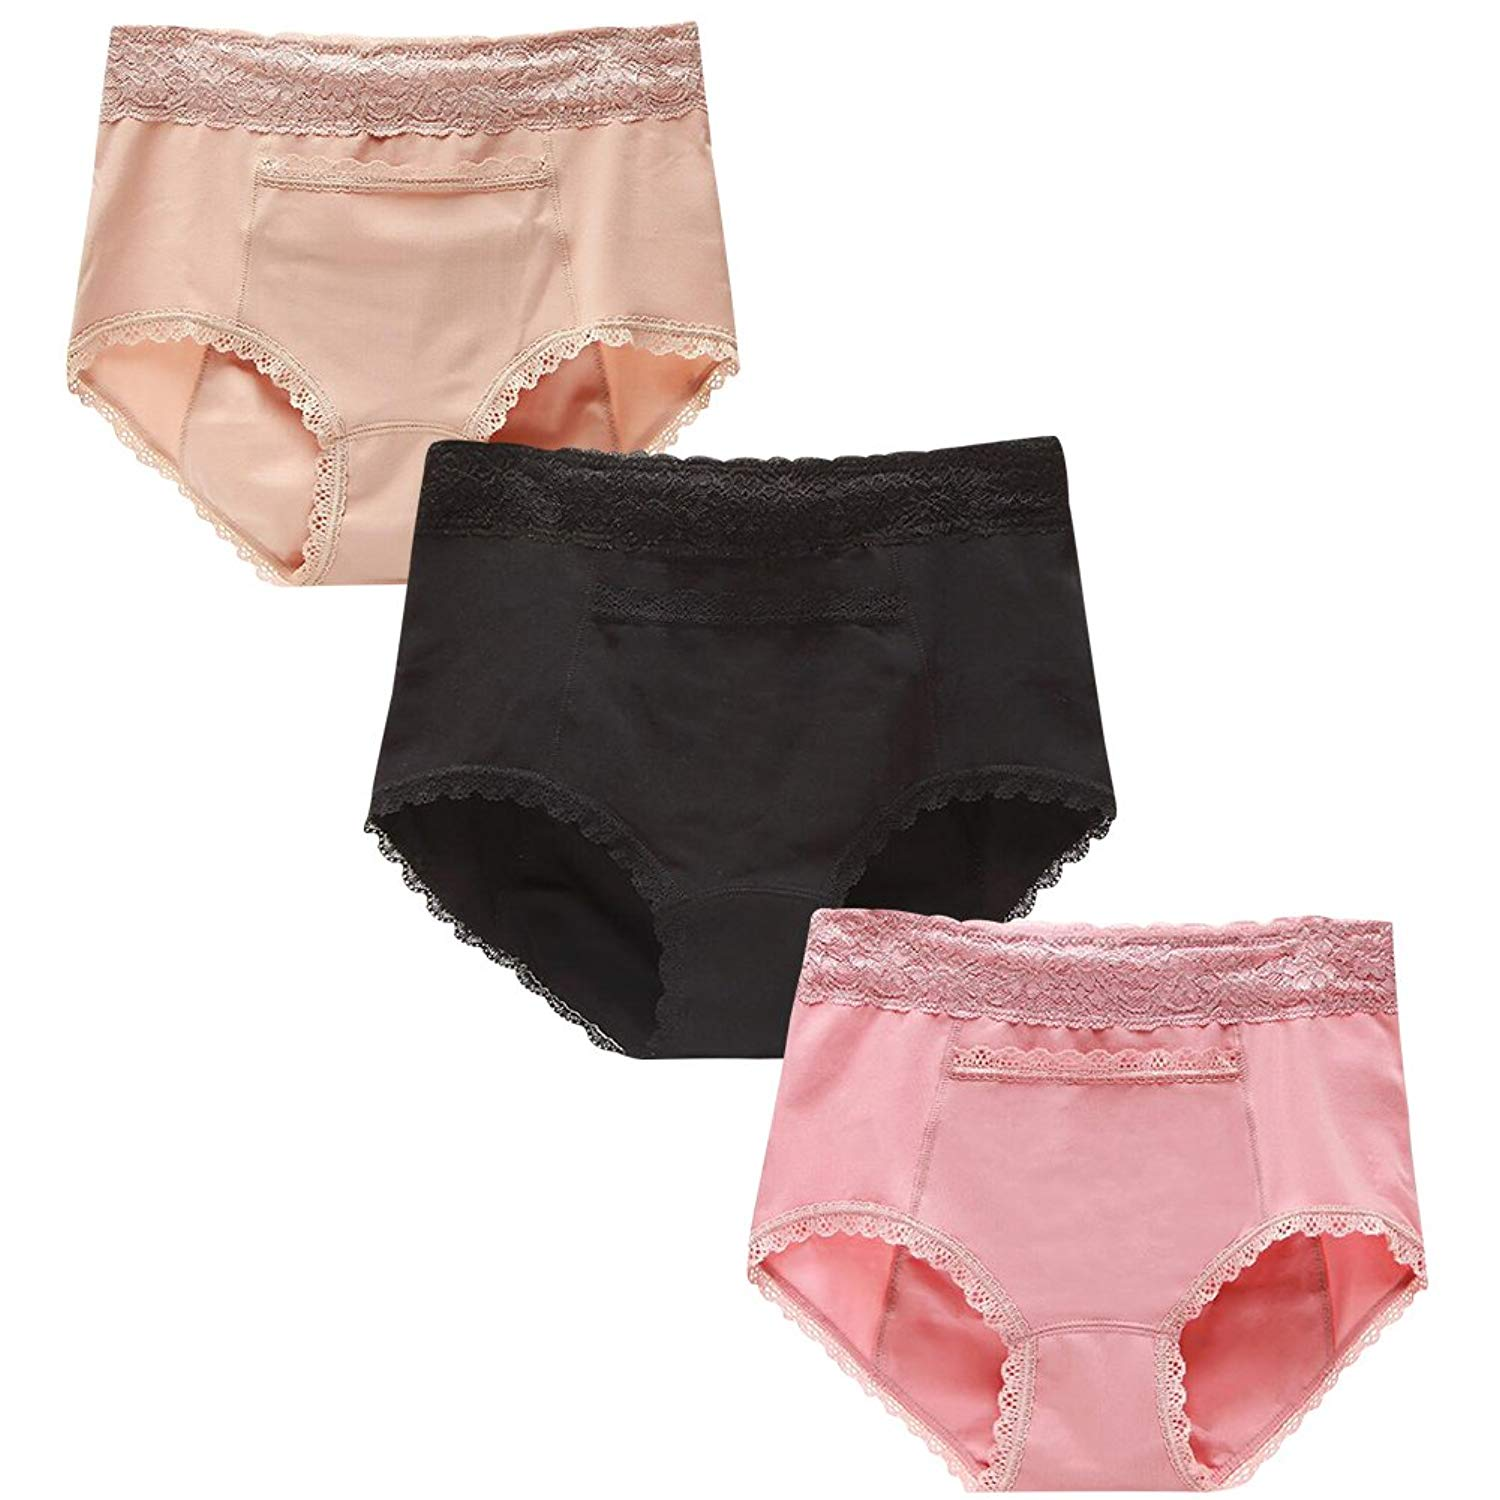 28c23afba581 Get Quotations · The B-Style TB Women Panties Cycle Period Briefs Leak-Proof  Menstrual Period Underpants